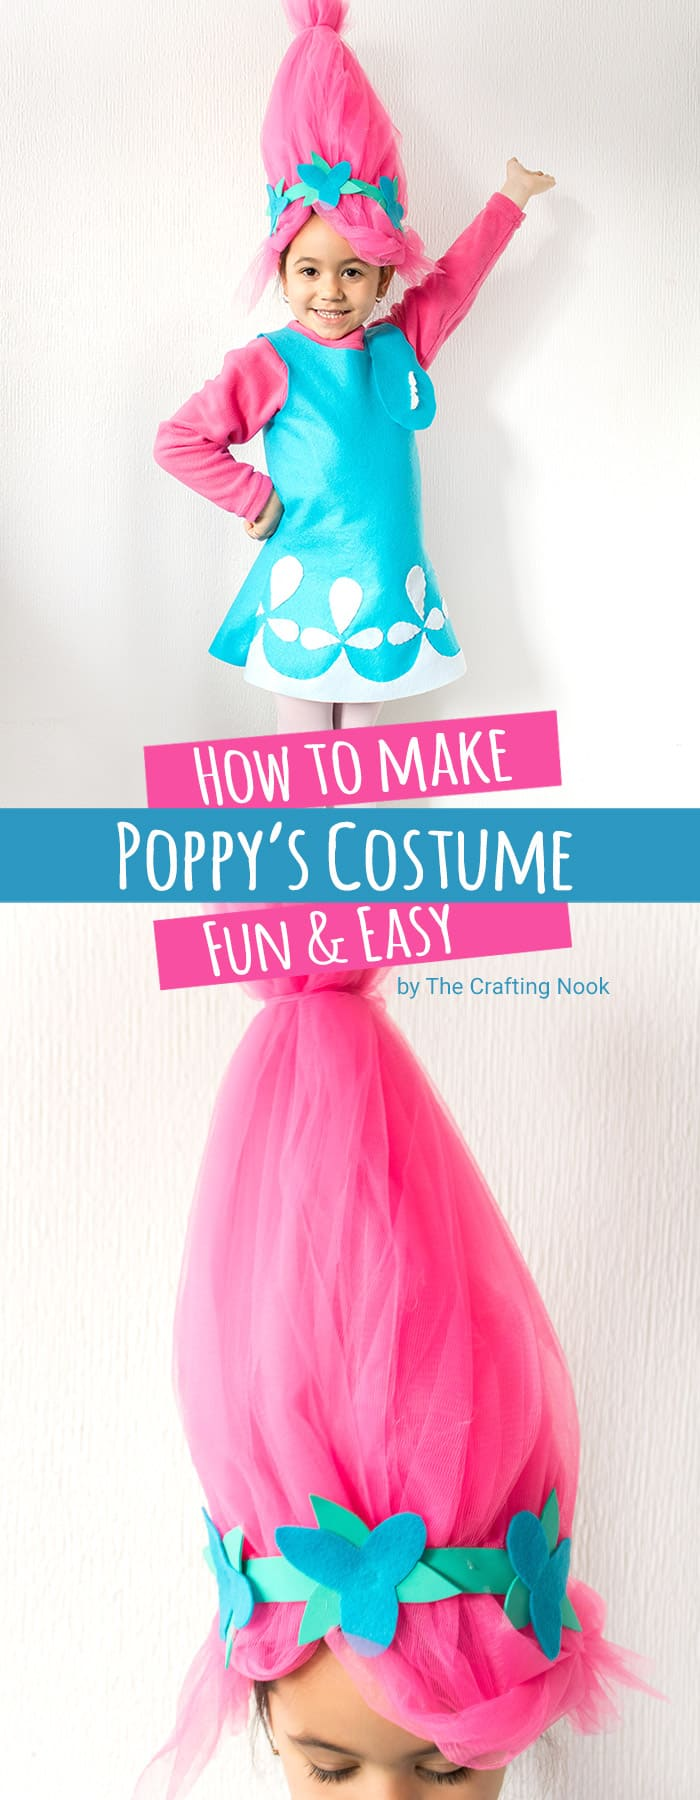 How to Make Troll's Poppy Costume